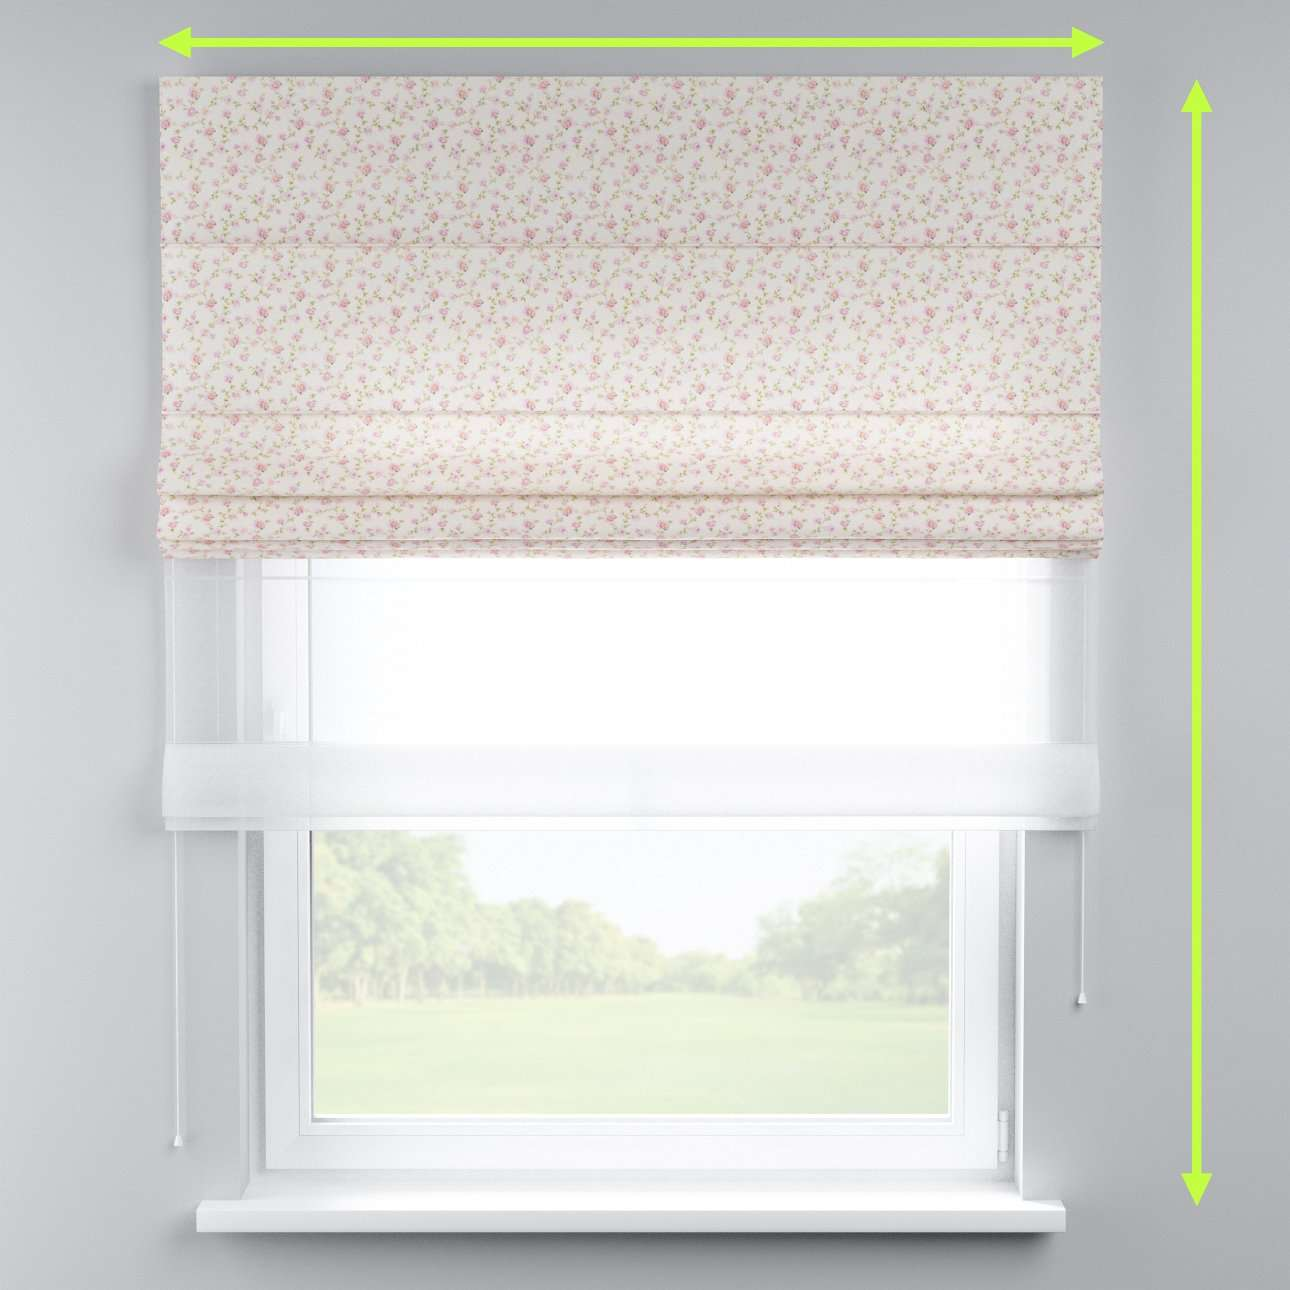 Voile and fabric roman blind (DUO II) in collection Ashley, fabric: 137-45